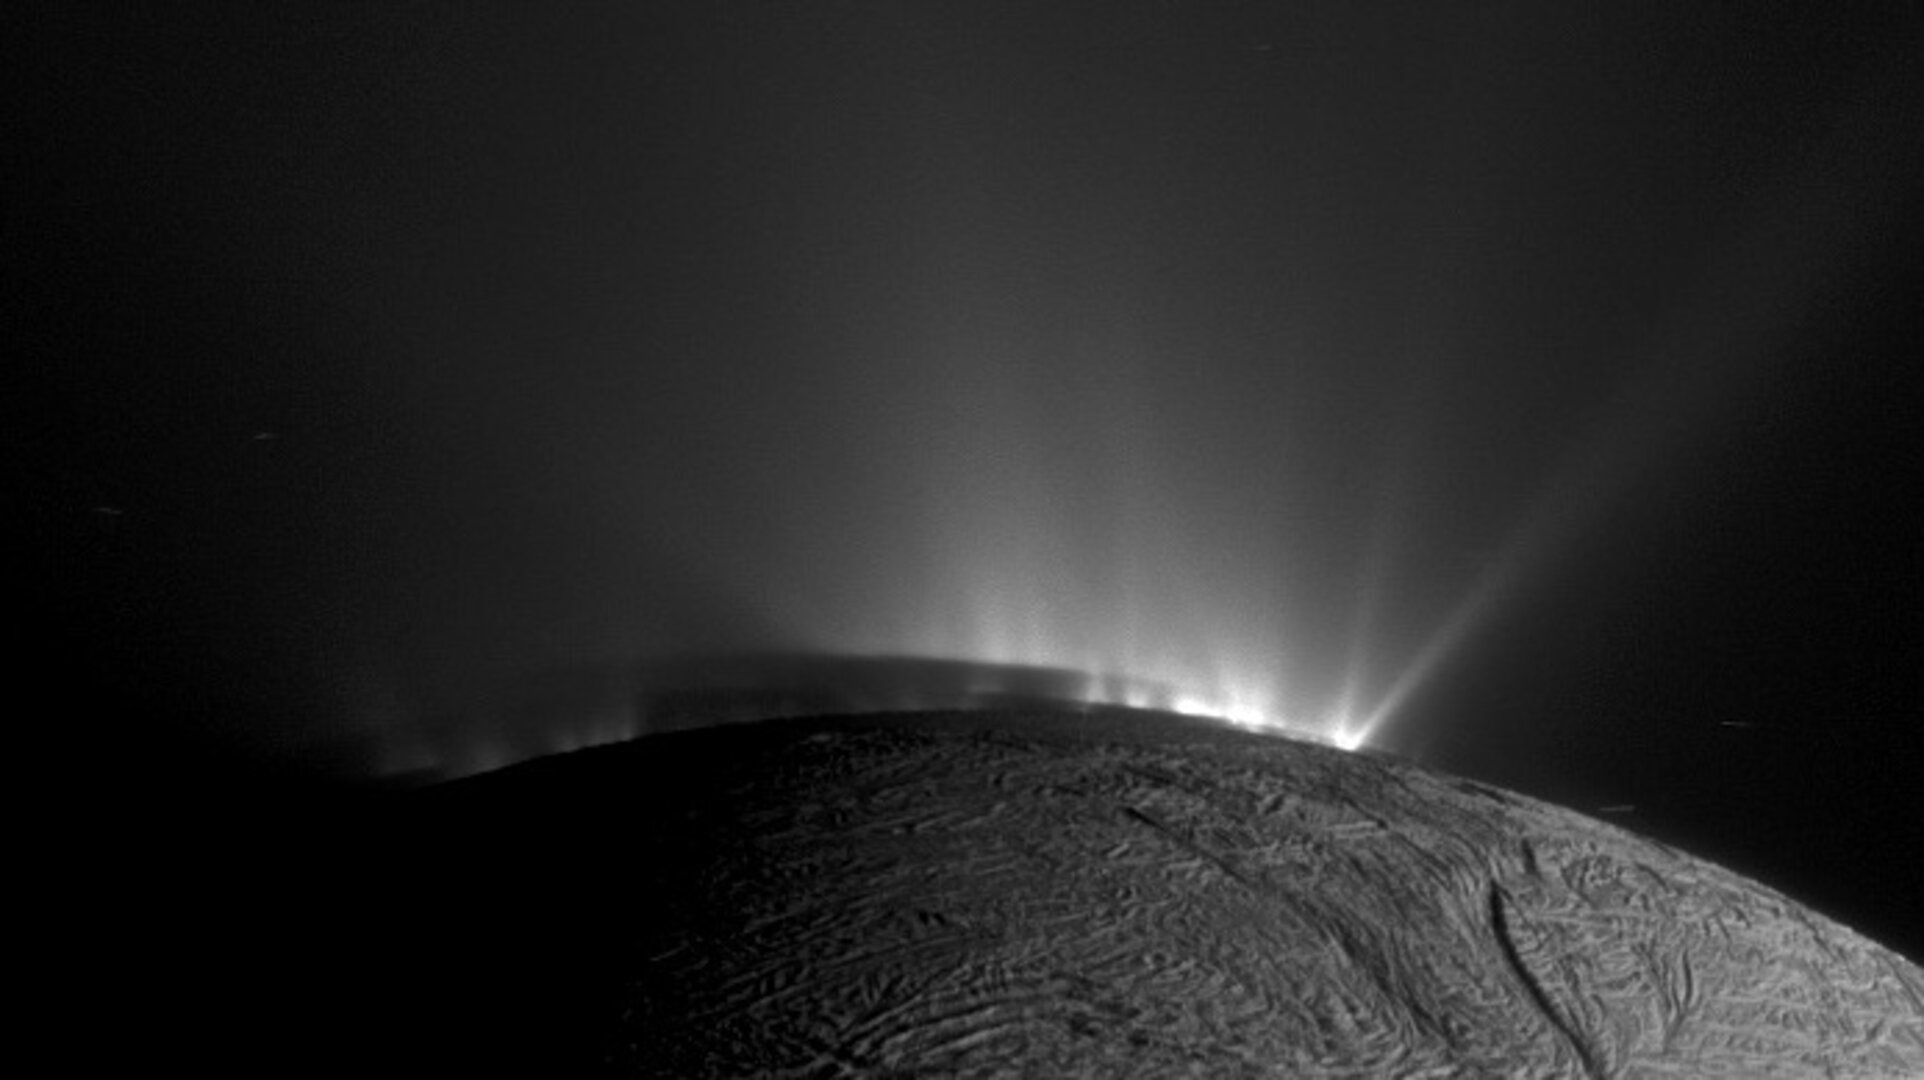 Enceladus jets and shadows